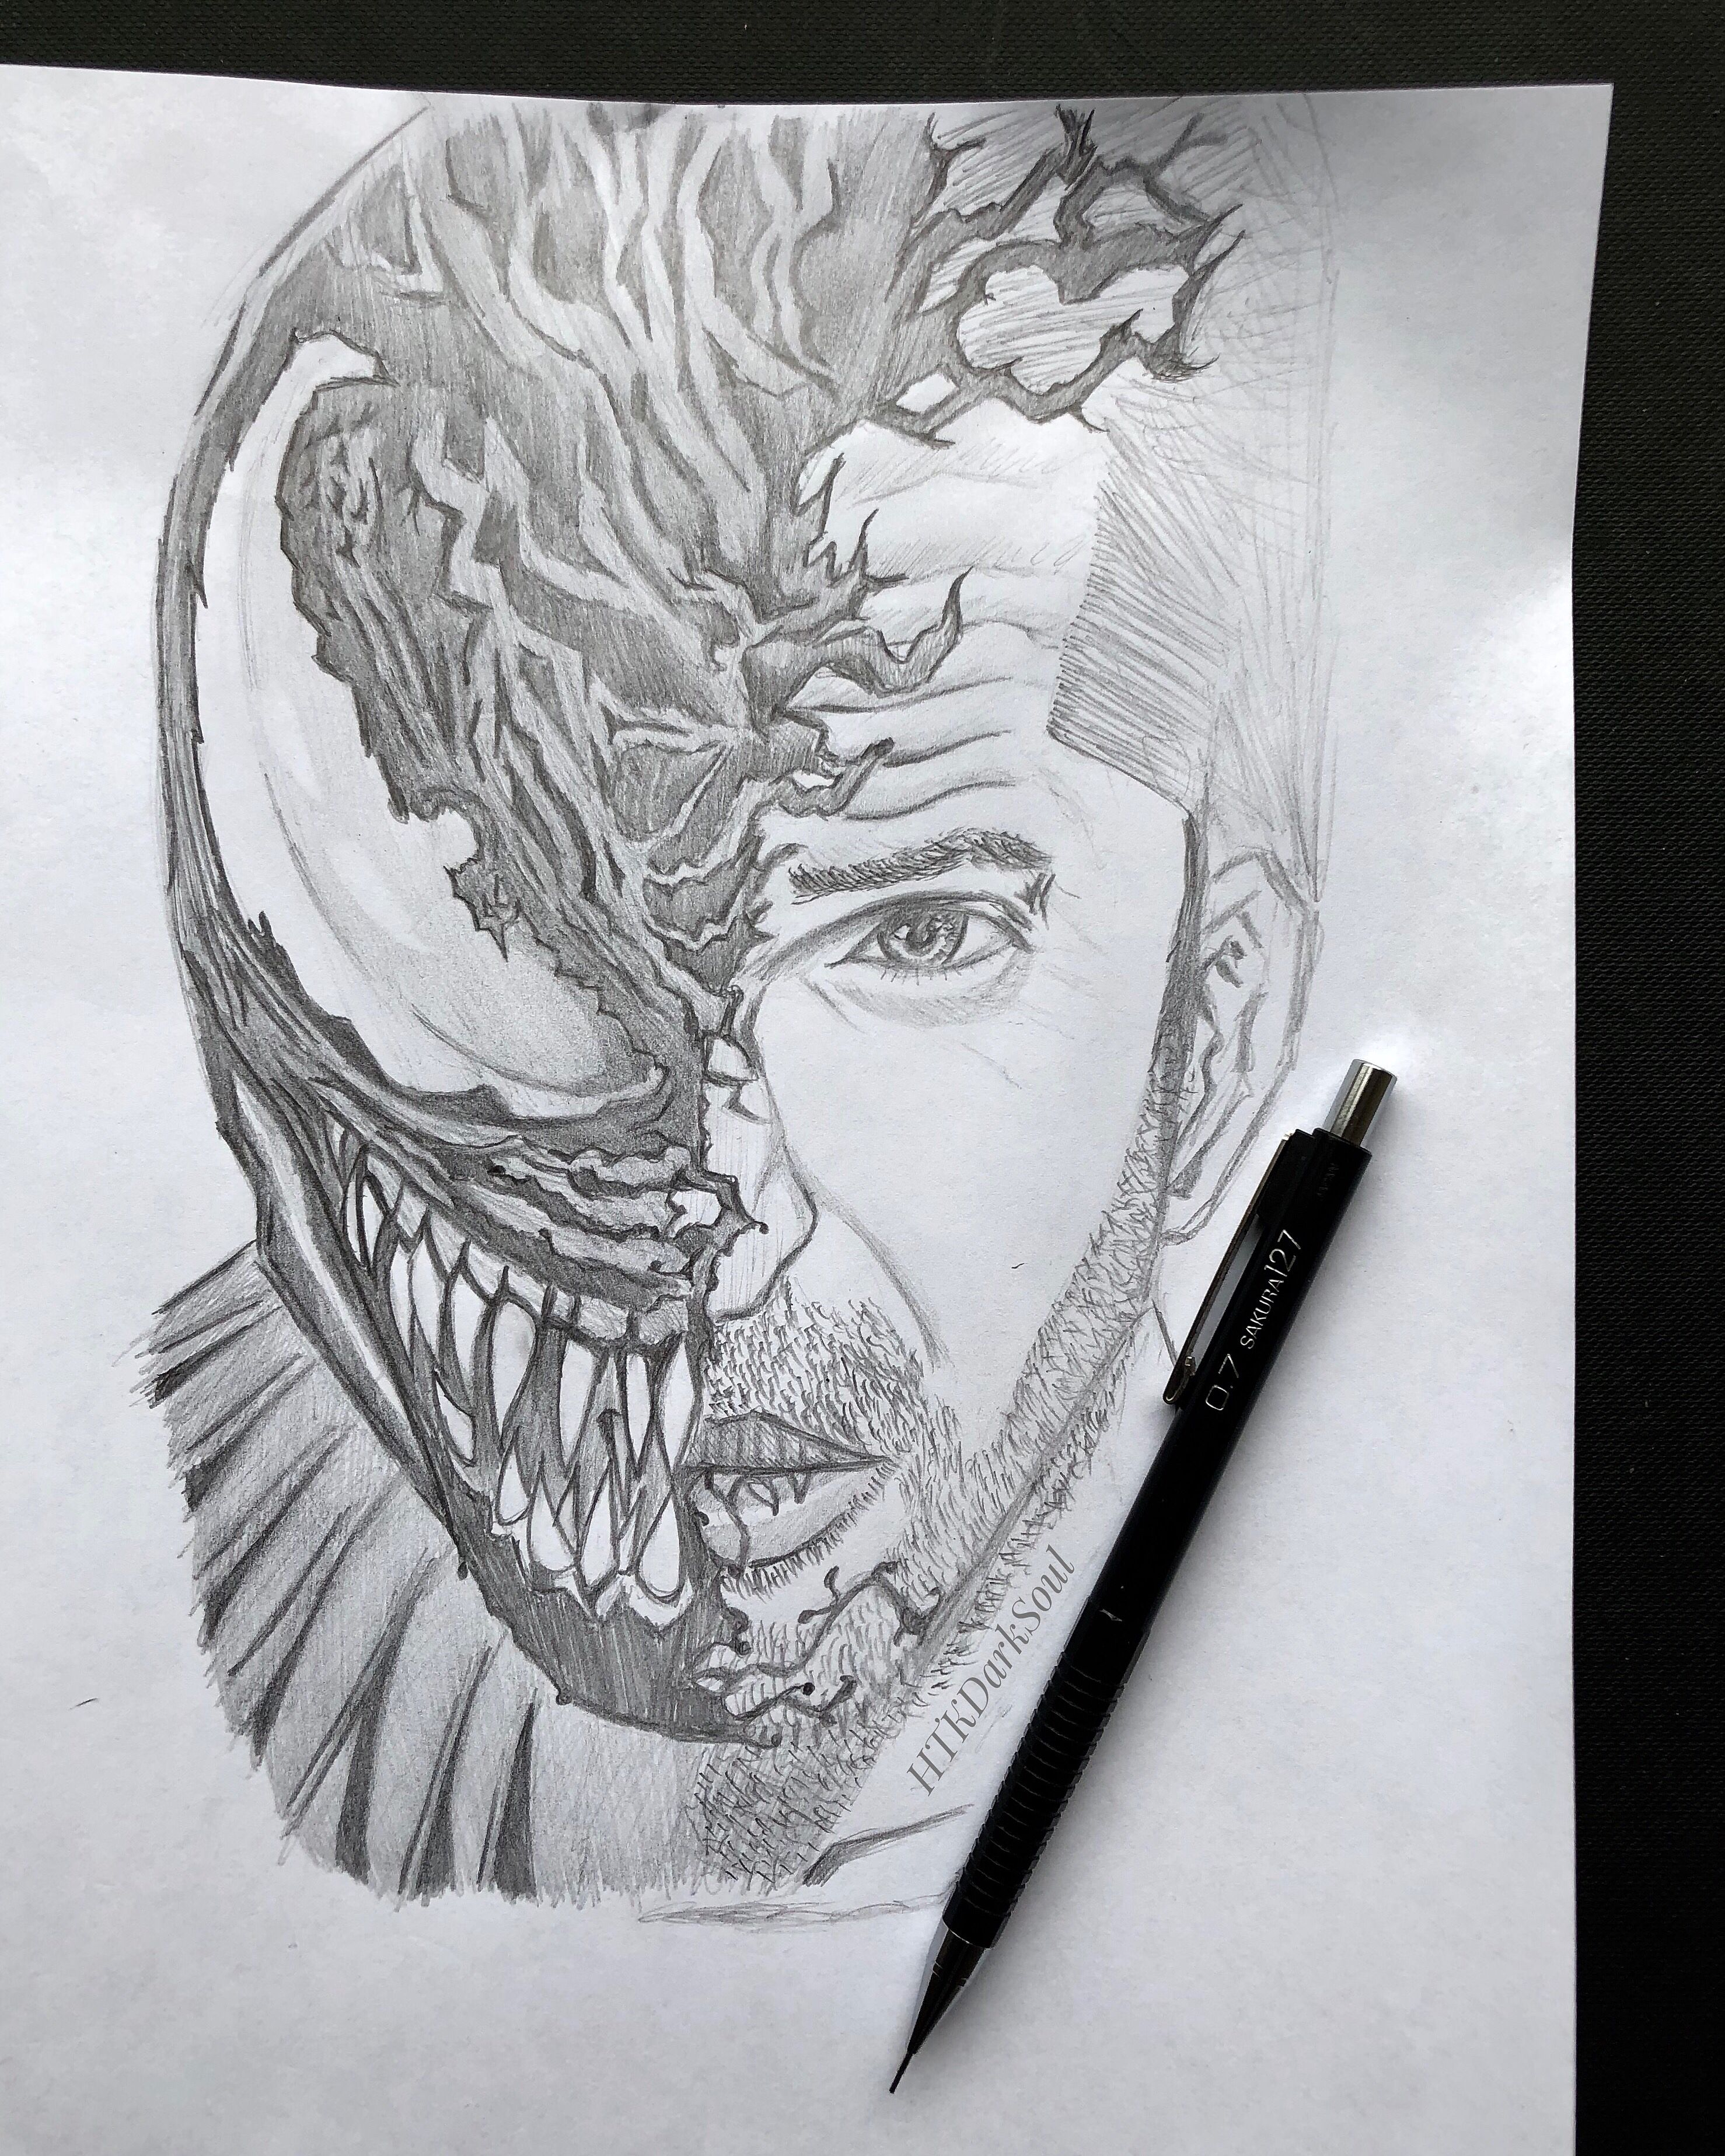 I tried to draw the venom wallpaper in pencil with a few of my own touches drawn by htkdarksoul